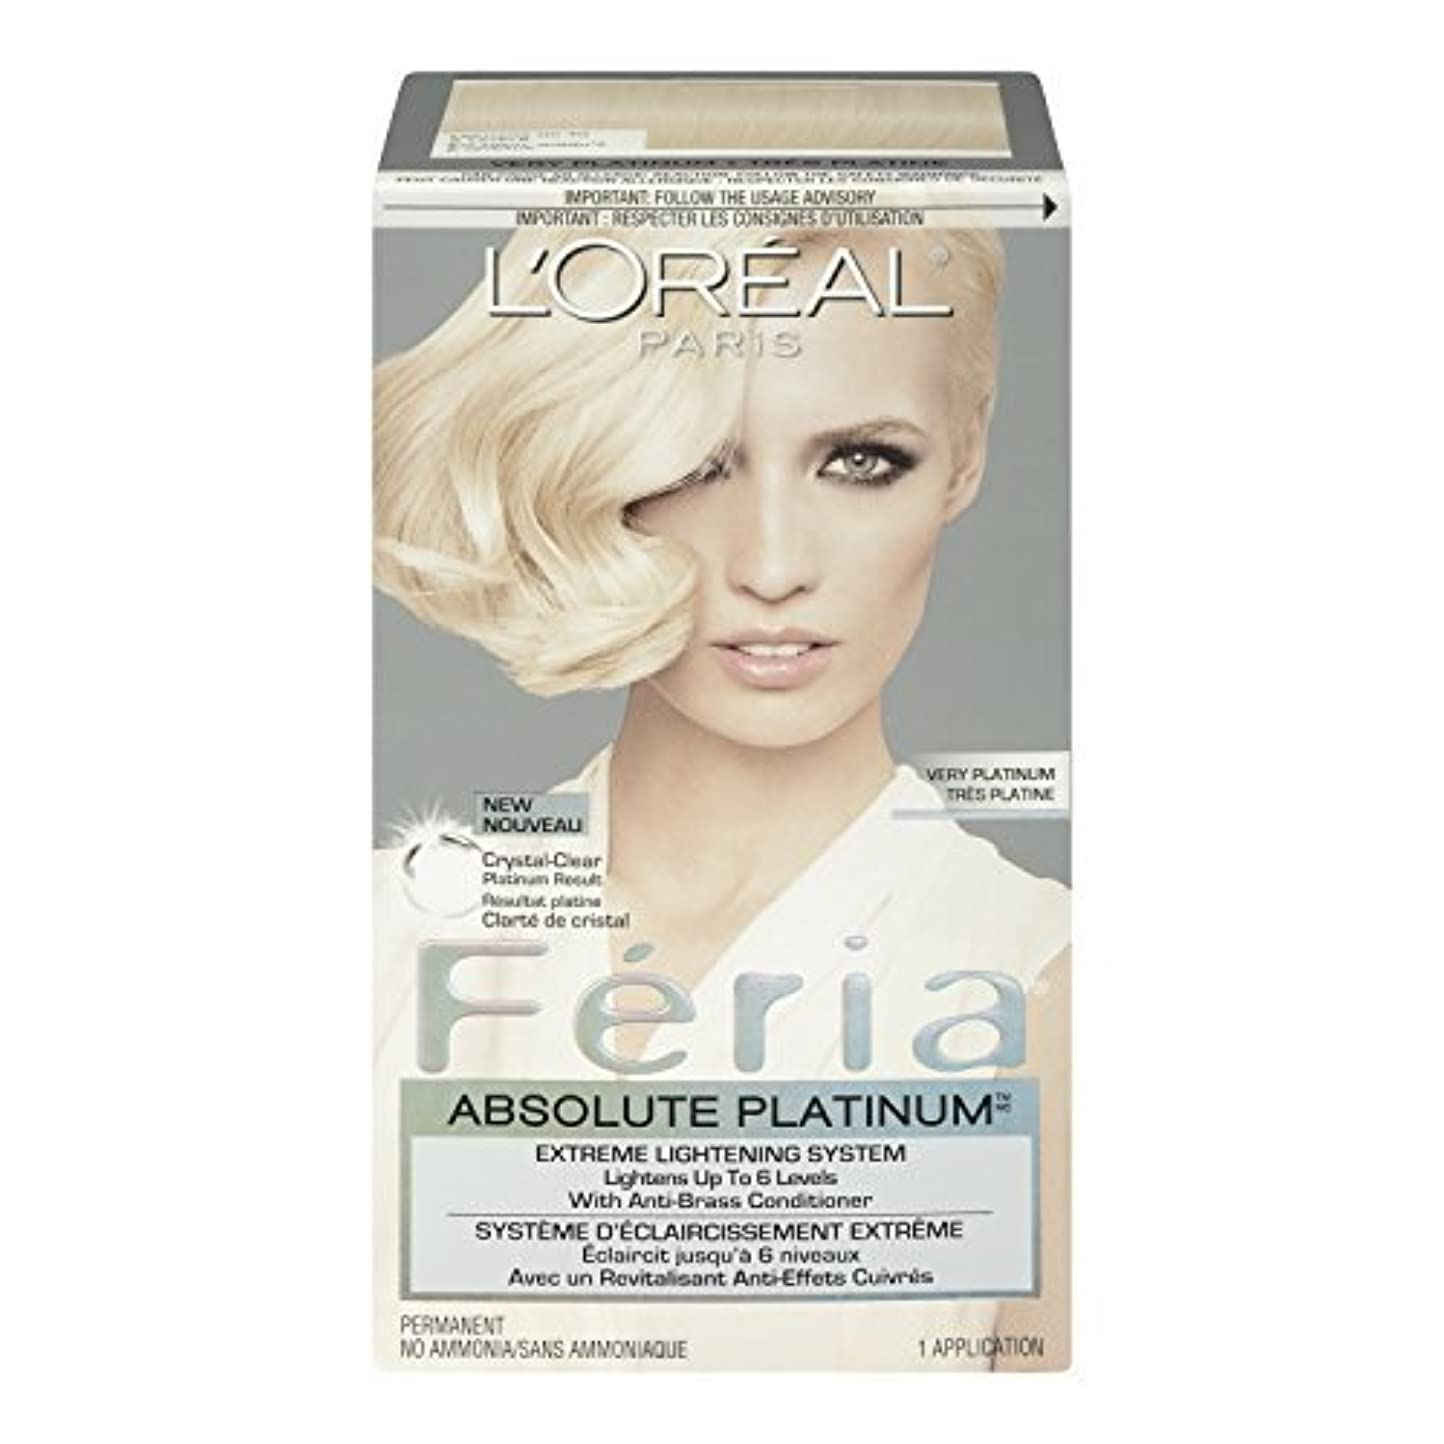 L'Oreal Feria Absolute Platinums Hair Color, Very Platinum by L'Oreal Paris Hair Color [並行輸入品]